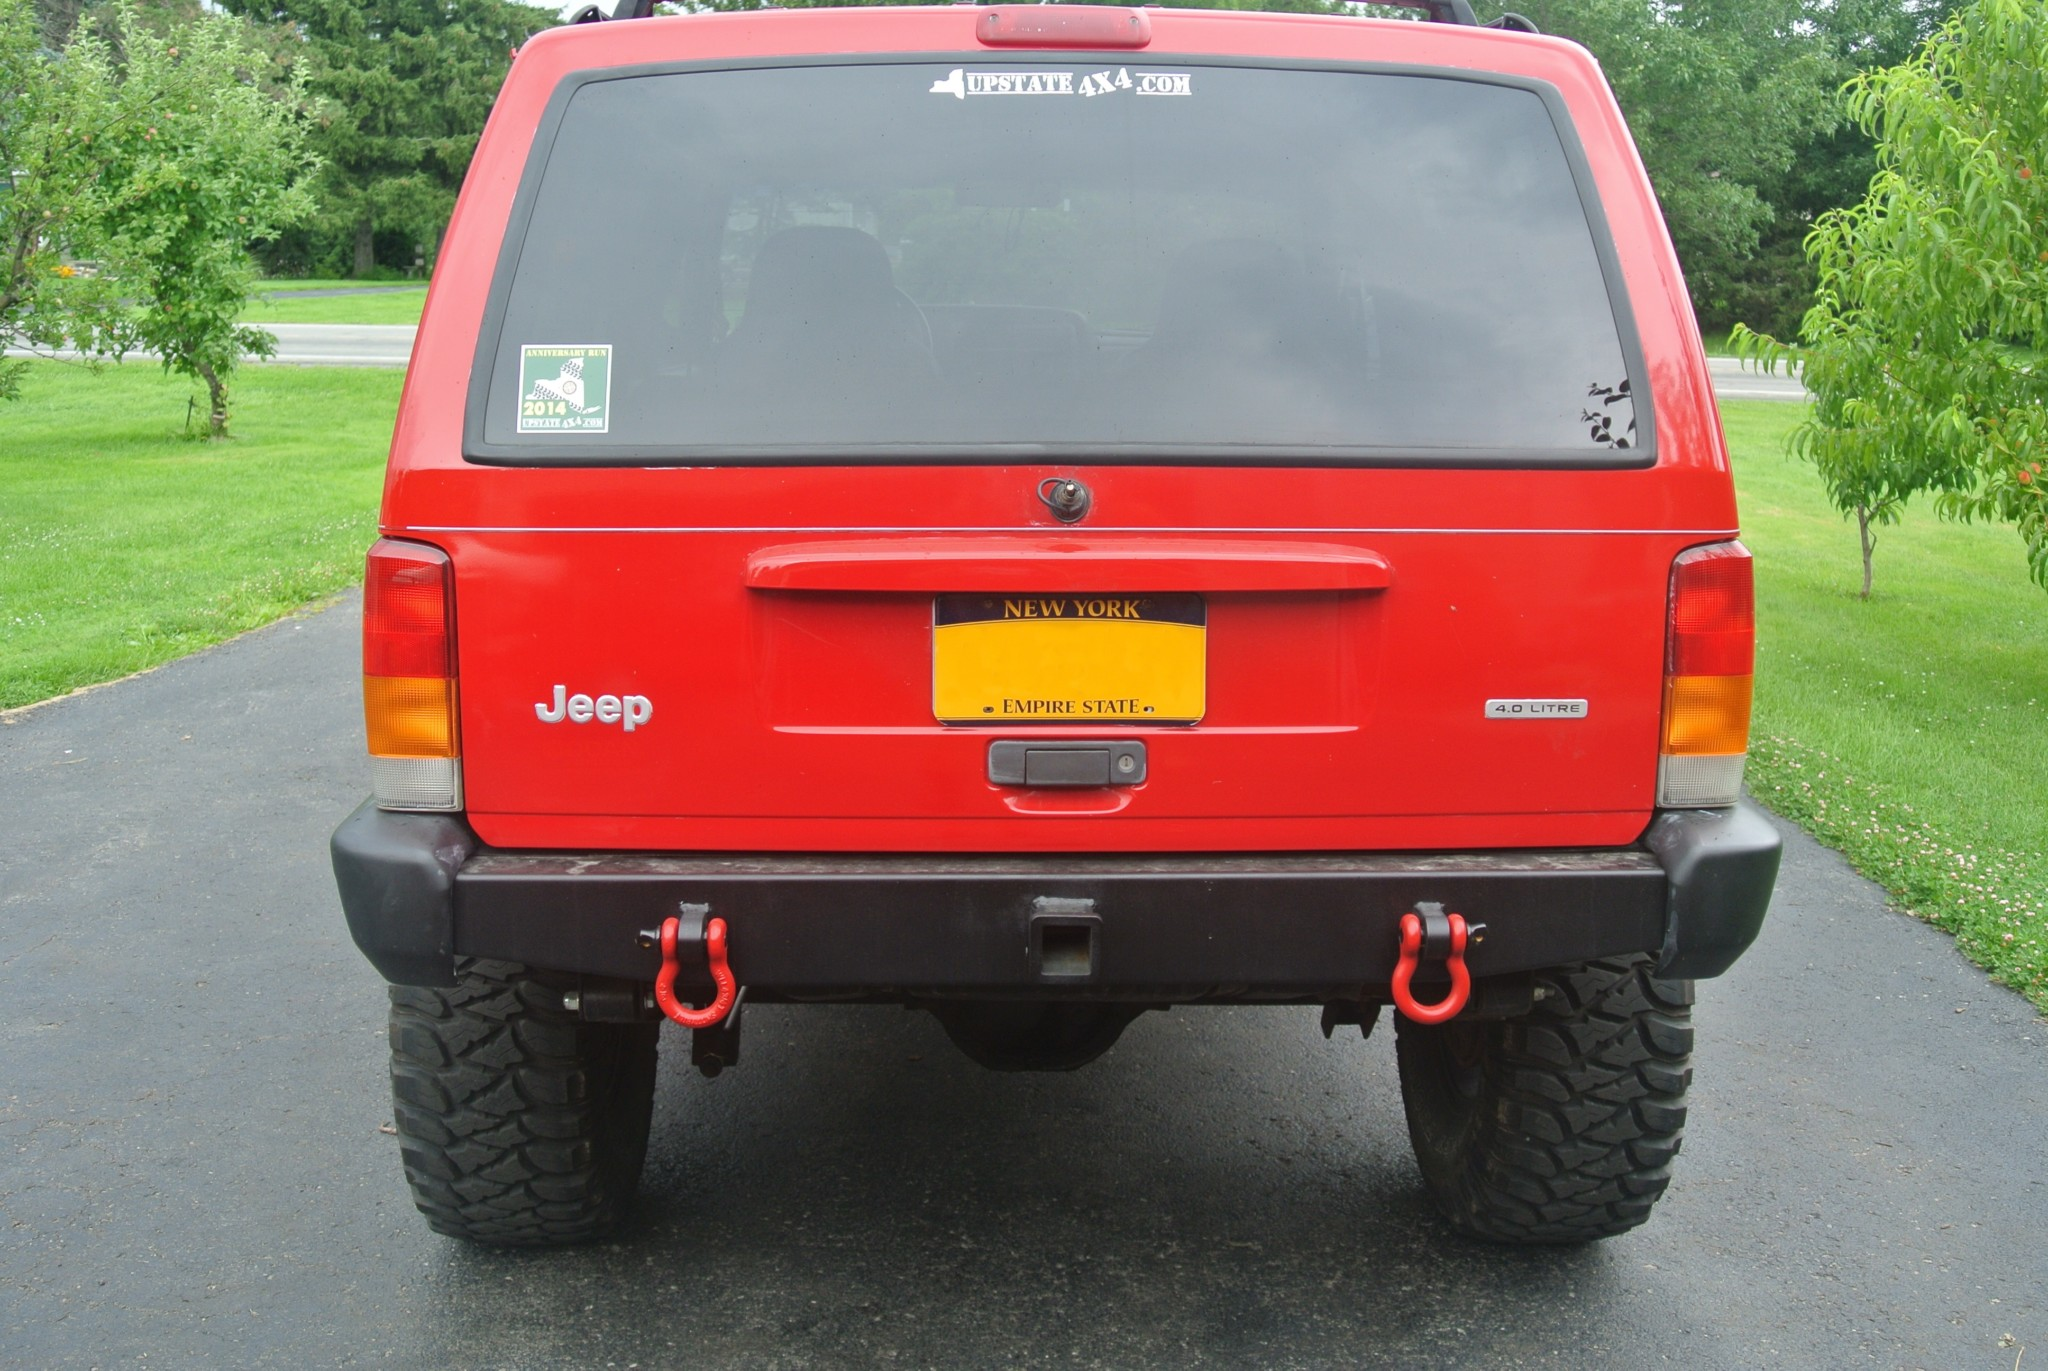 Img furthermore Image in addition E E Cb additionally Urban Madness in addition Maxresdefault. on wrangler prerunner